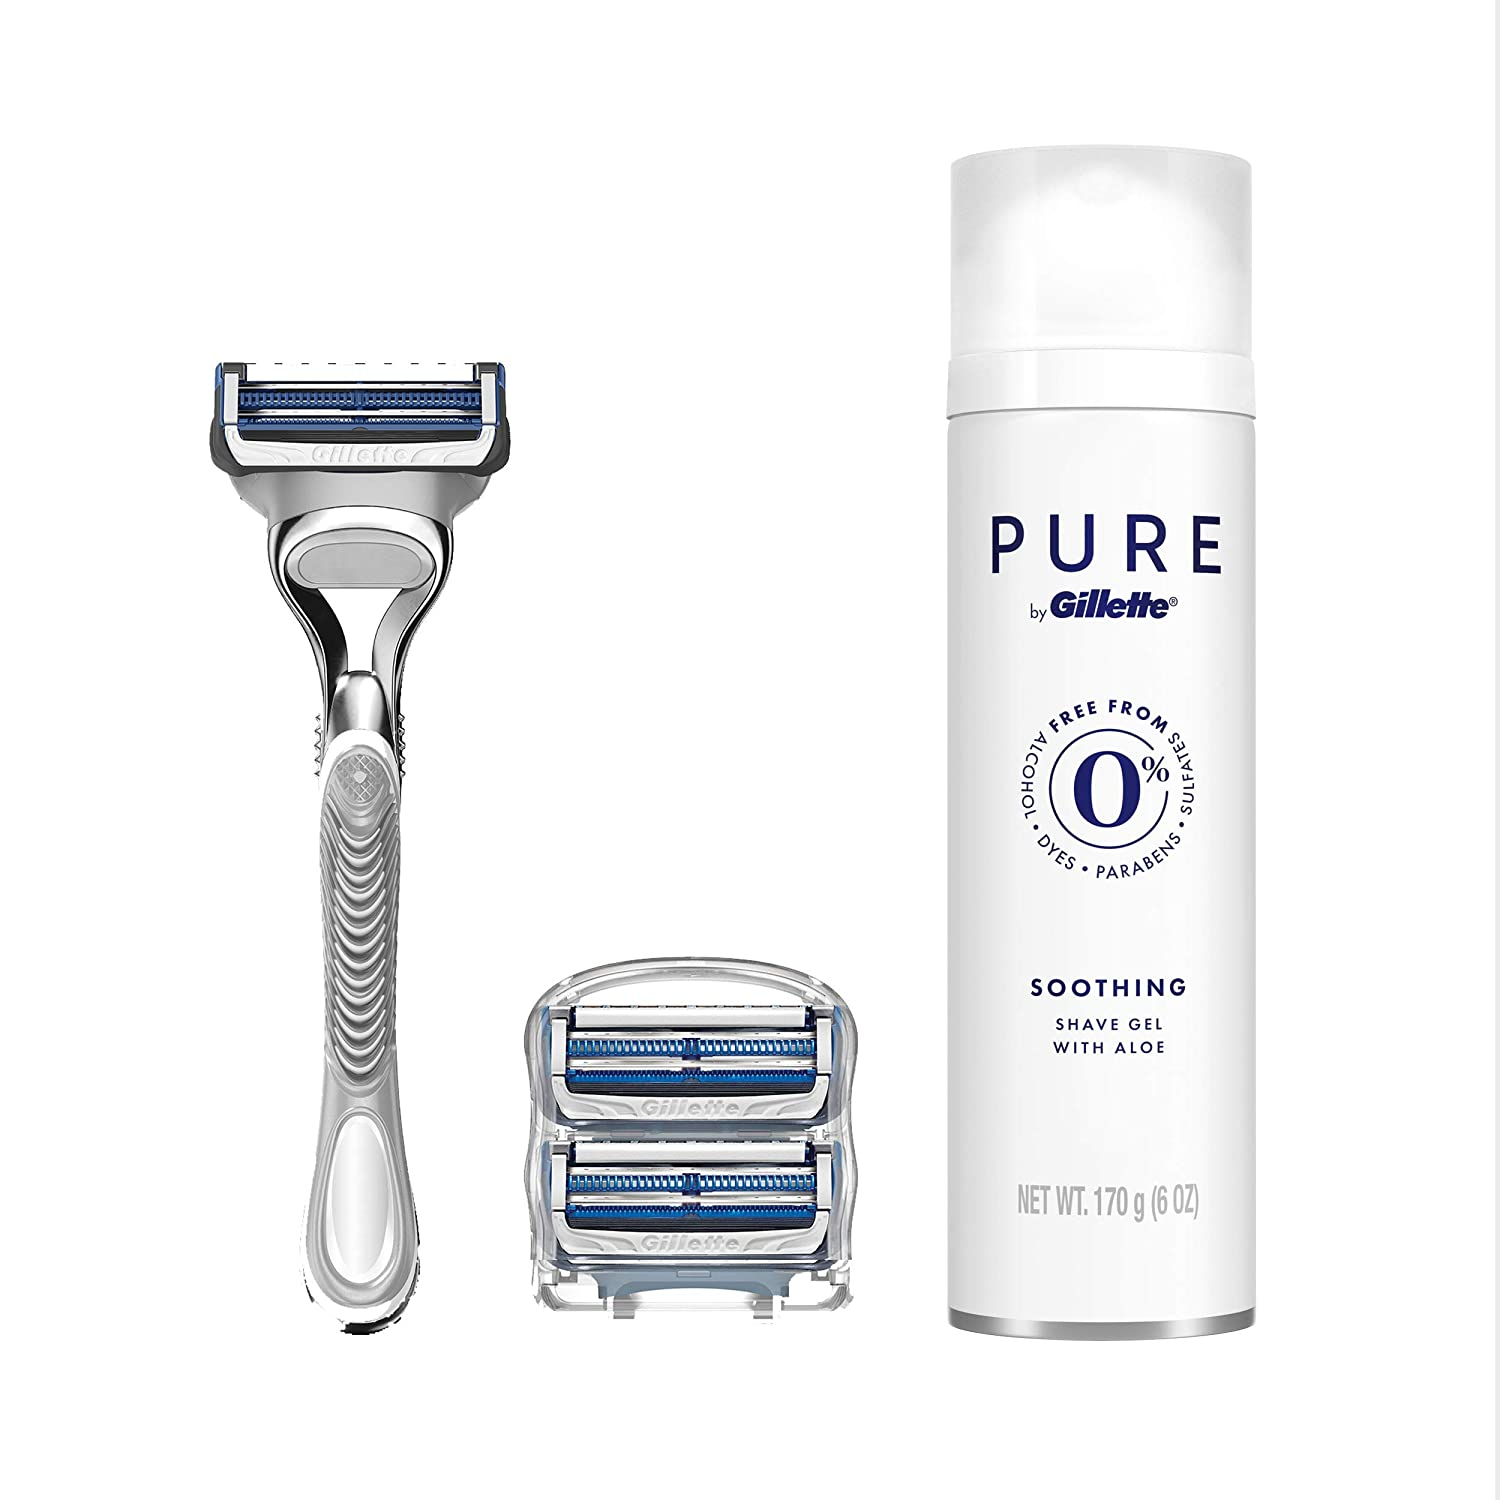 Gillette SkinGuard Men's Razor for Sensitive Skin, 3 Blade Refills + Pure Shave Gel 6oz, 1 razor + 3 Handles + Shave Gel